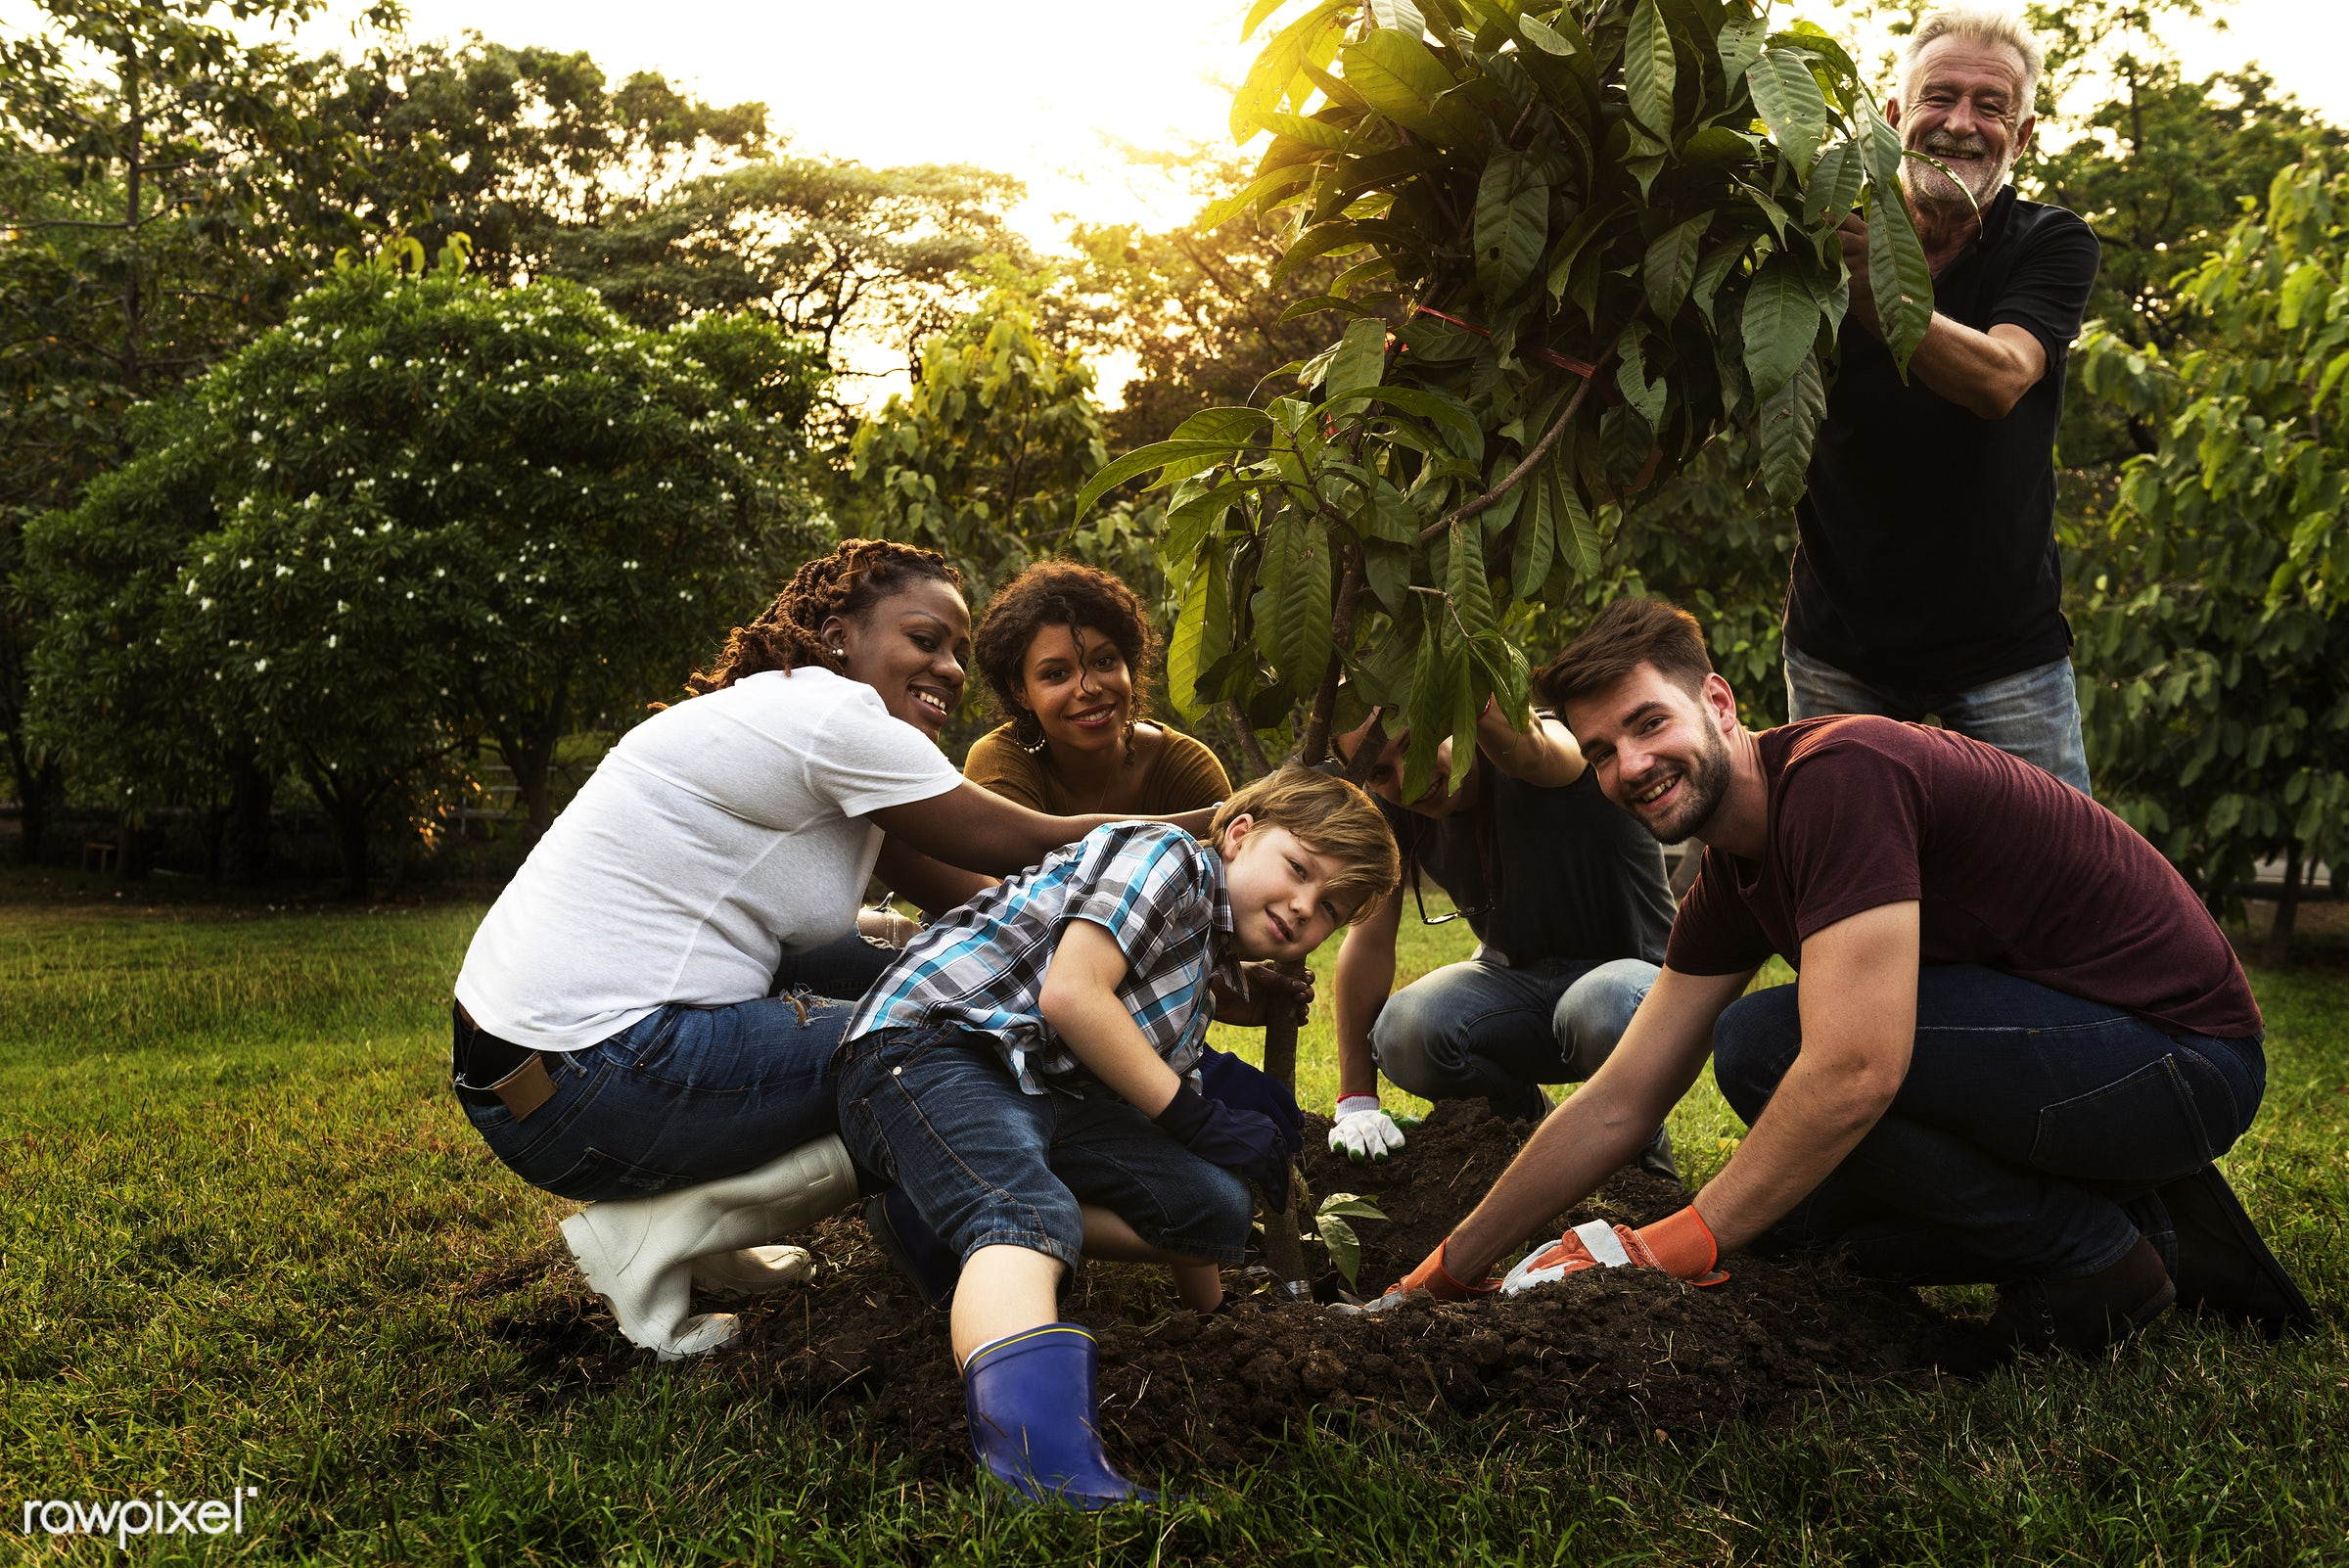 person, community service, leaves, people, together, kid, help, tree, nature, woman, friendship, dirt, responsibility,...